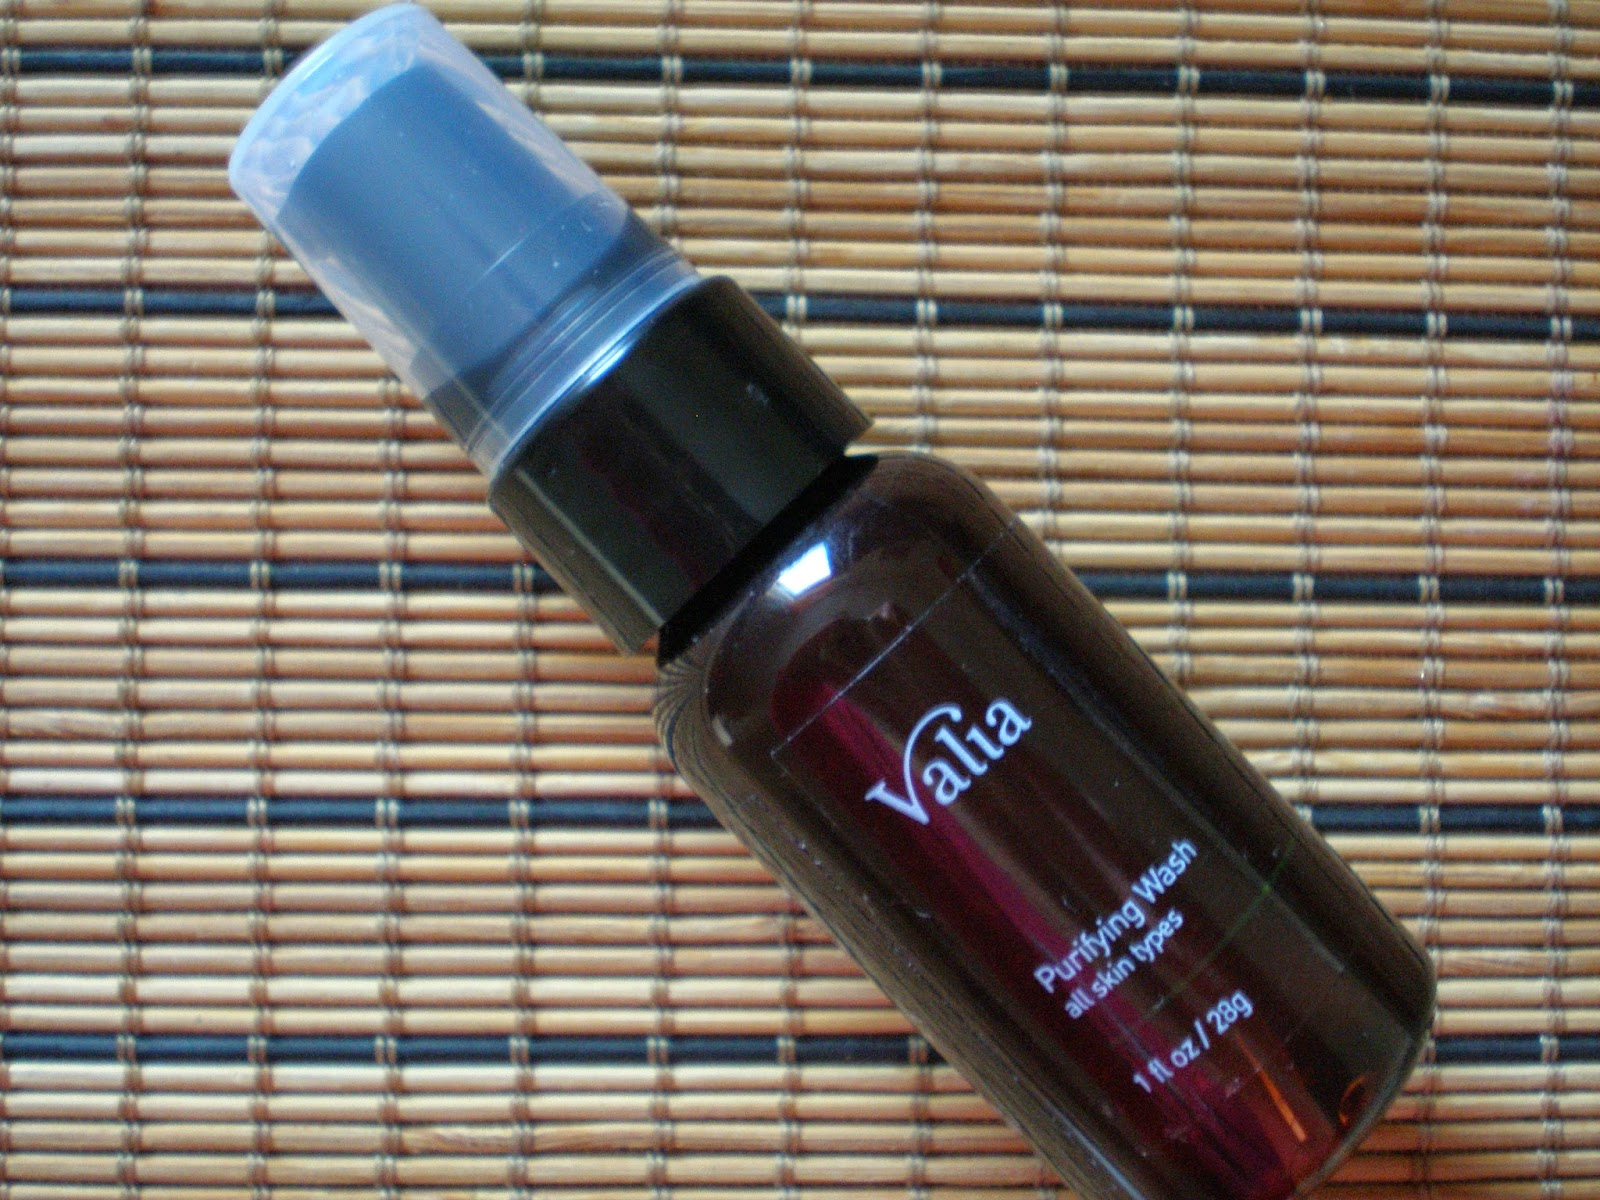 Valia Skincare Purifying Wash